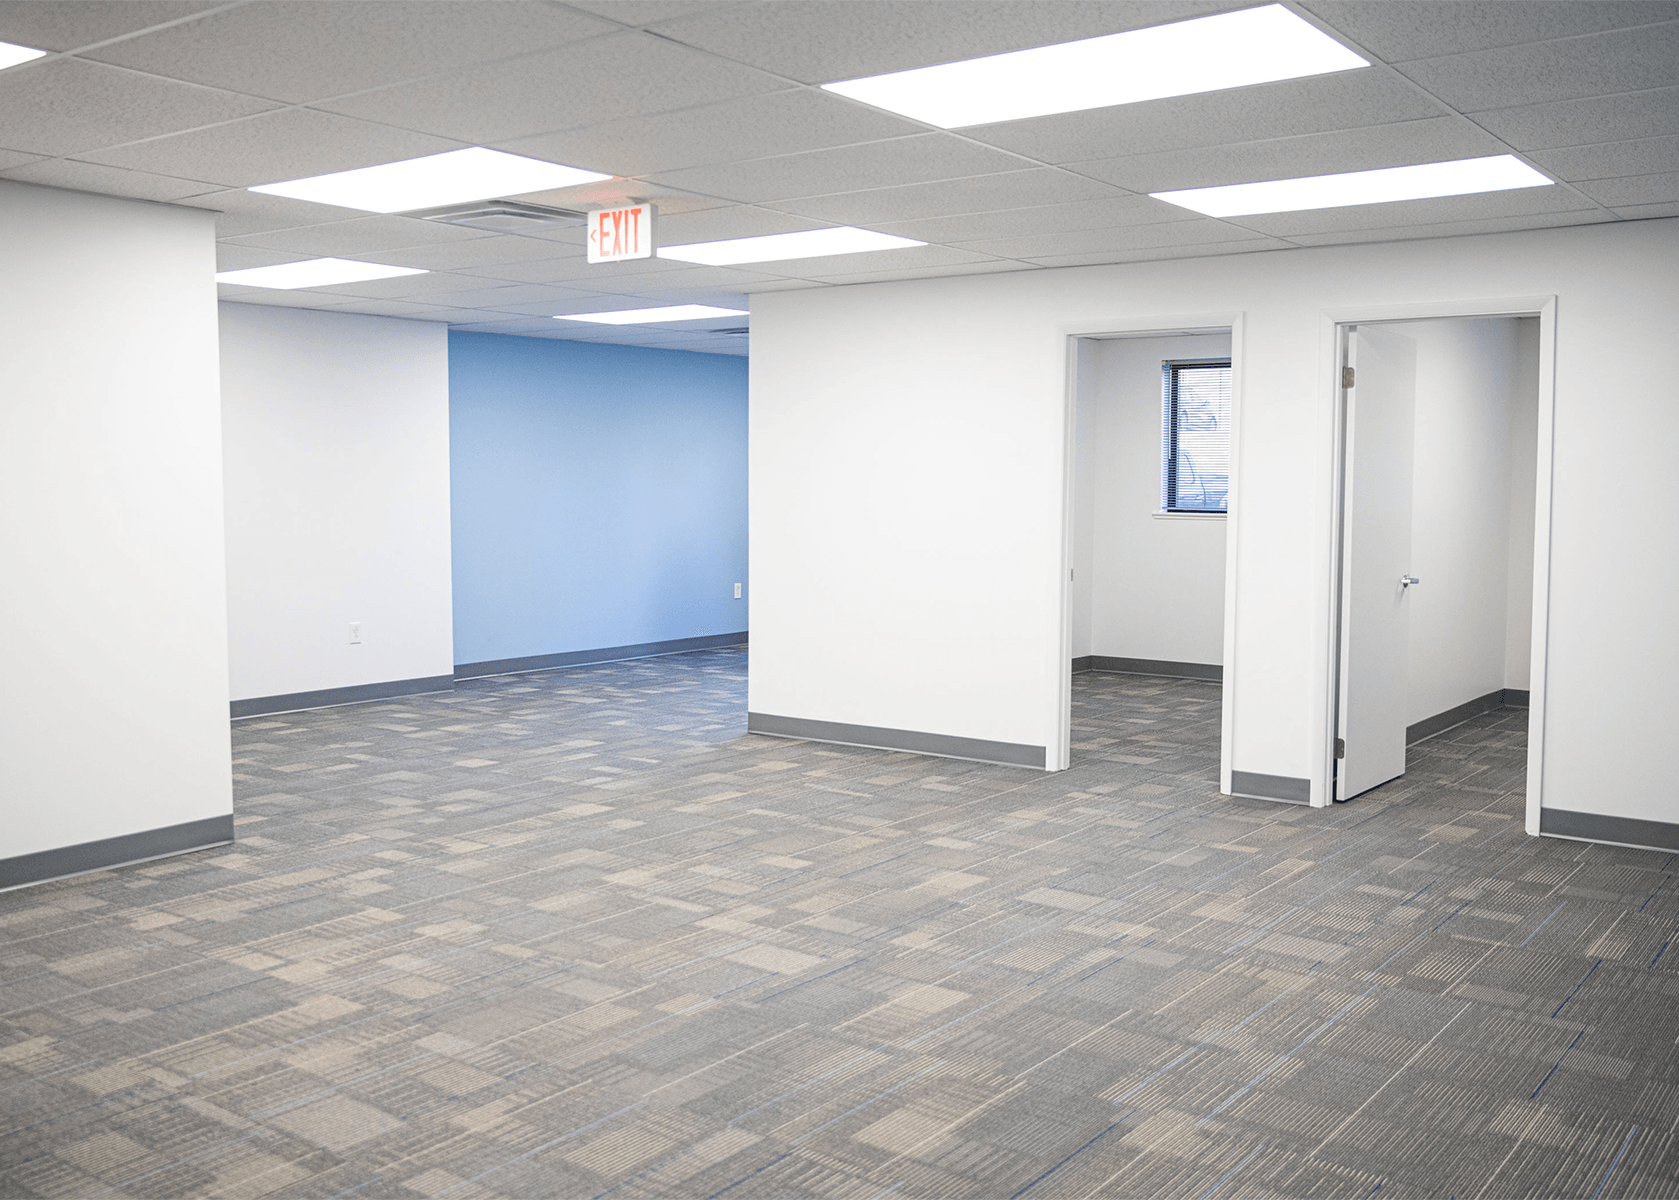 interior office with bright white walls with a blue accent wall